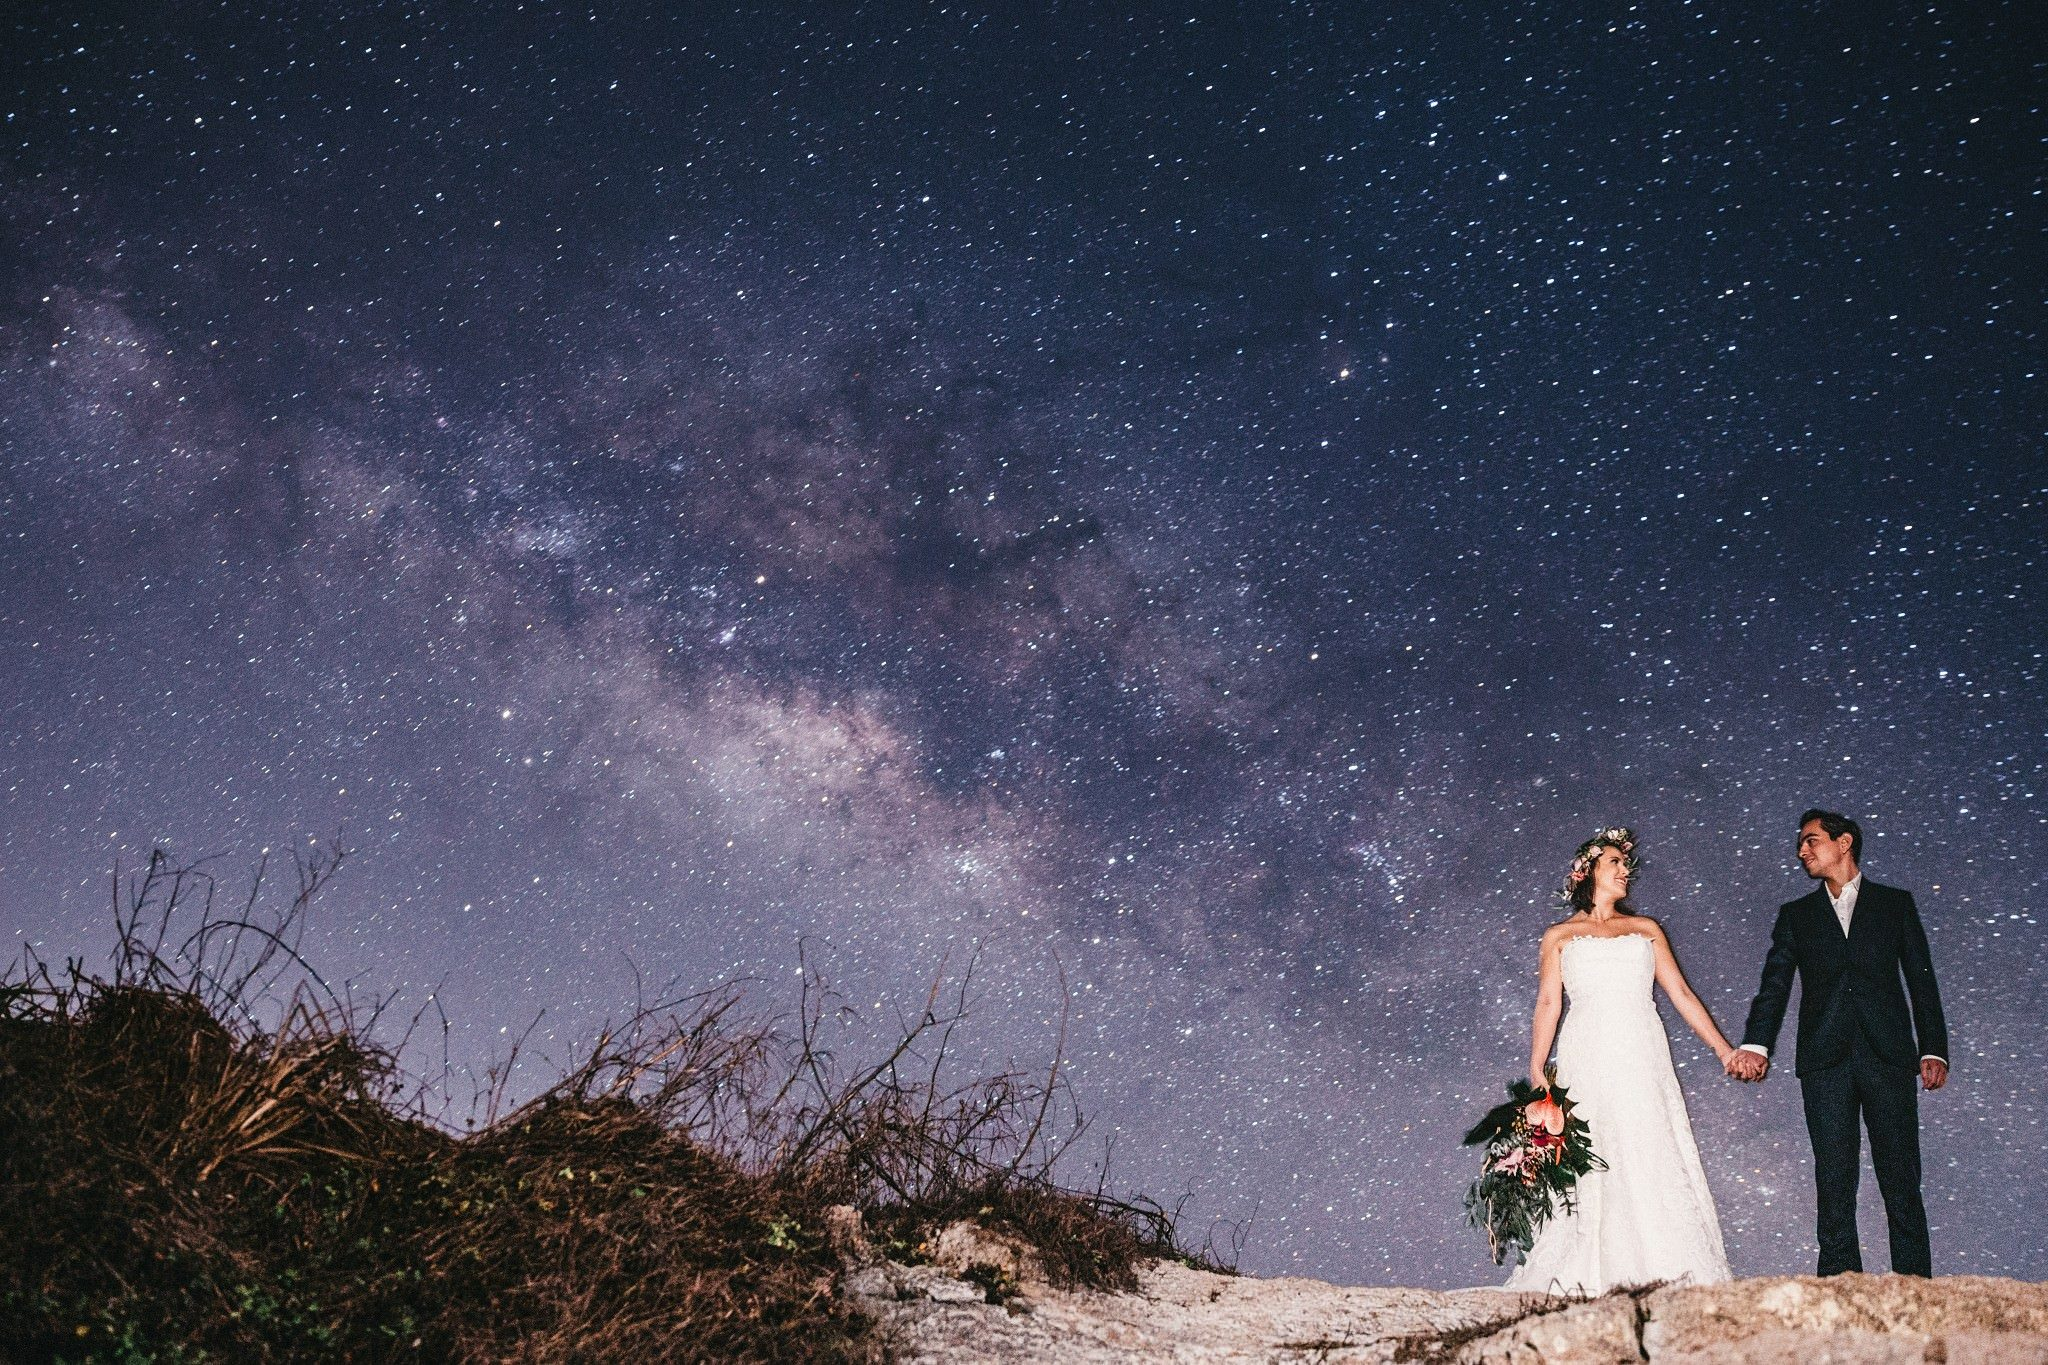 astro fotografía wedding